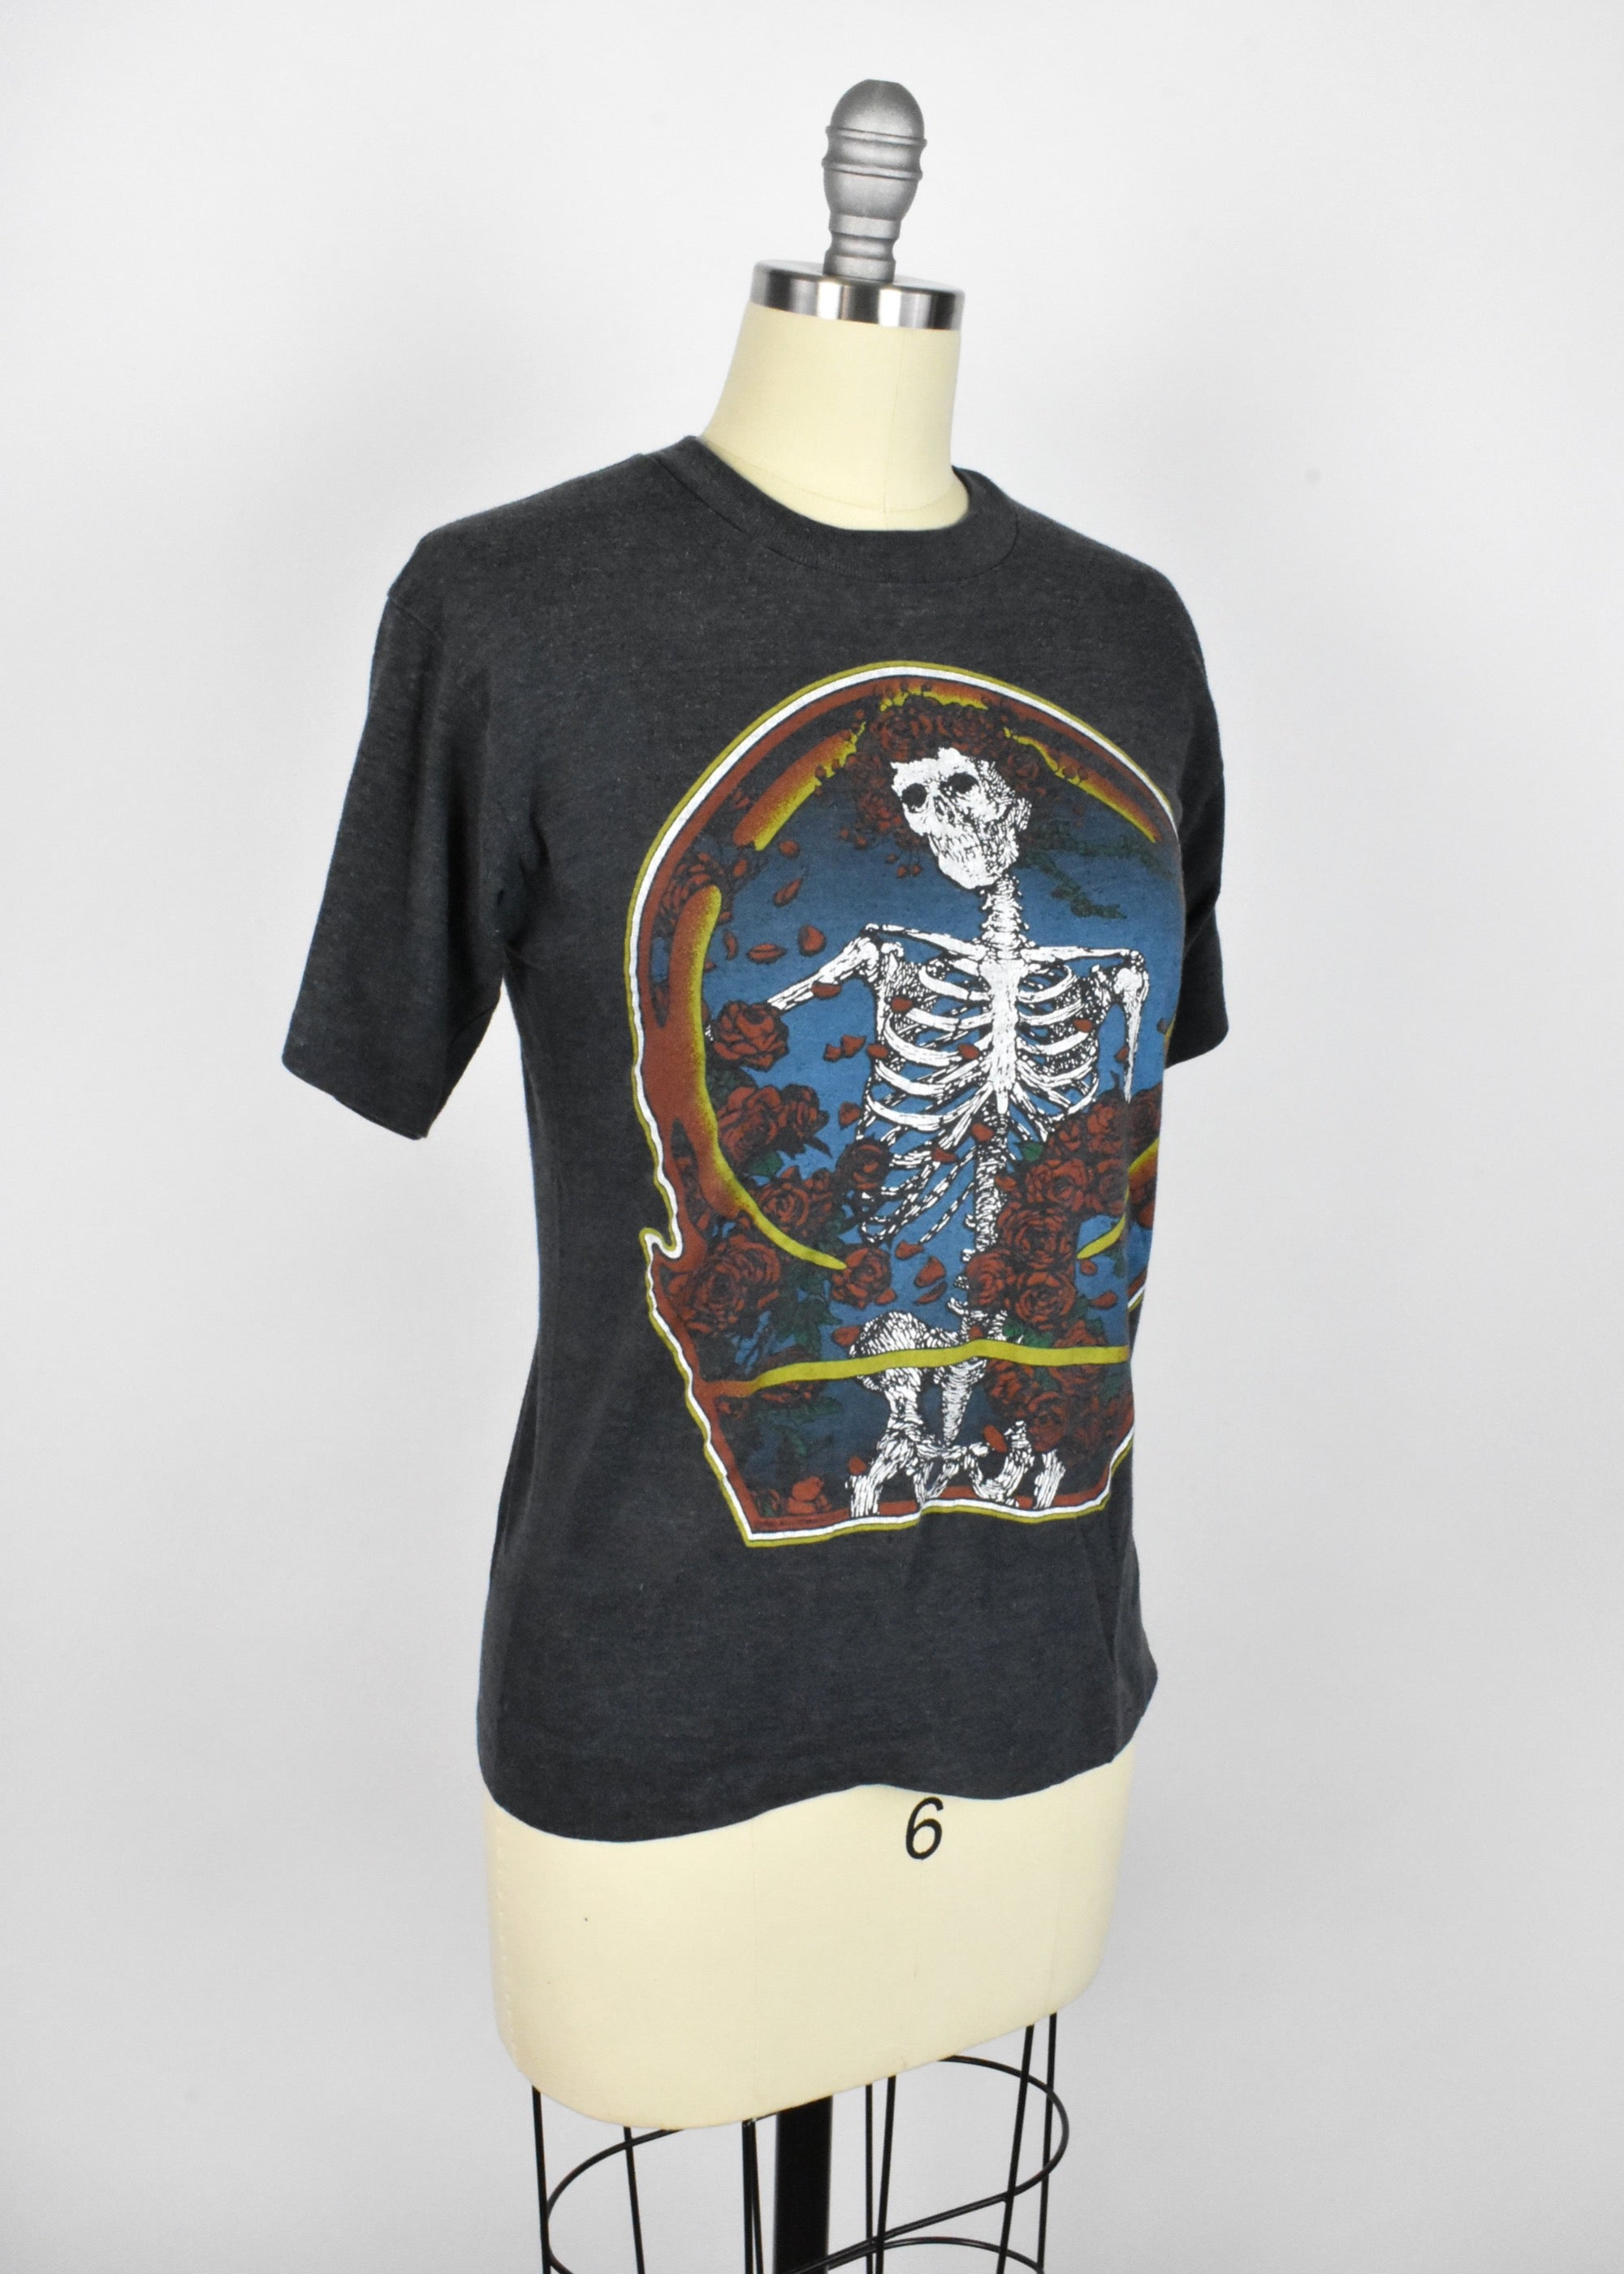 1980 Grateful Dead Tour T-Shirt